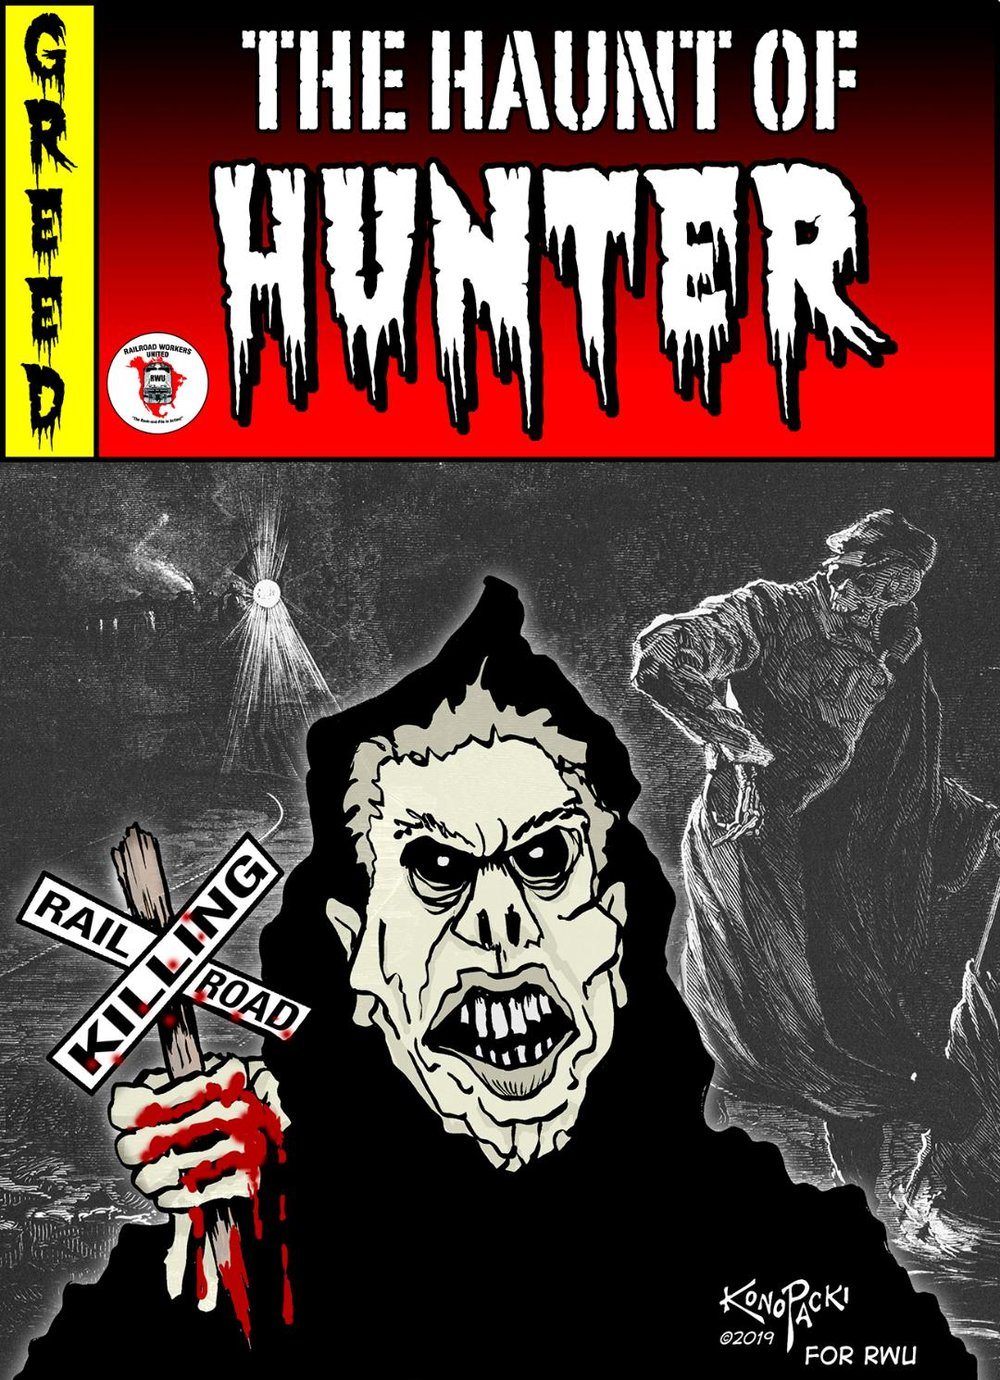 The Haunt of Hunter Cartoon with Blood 2.jpg